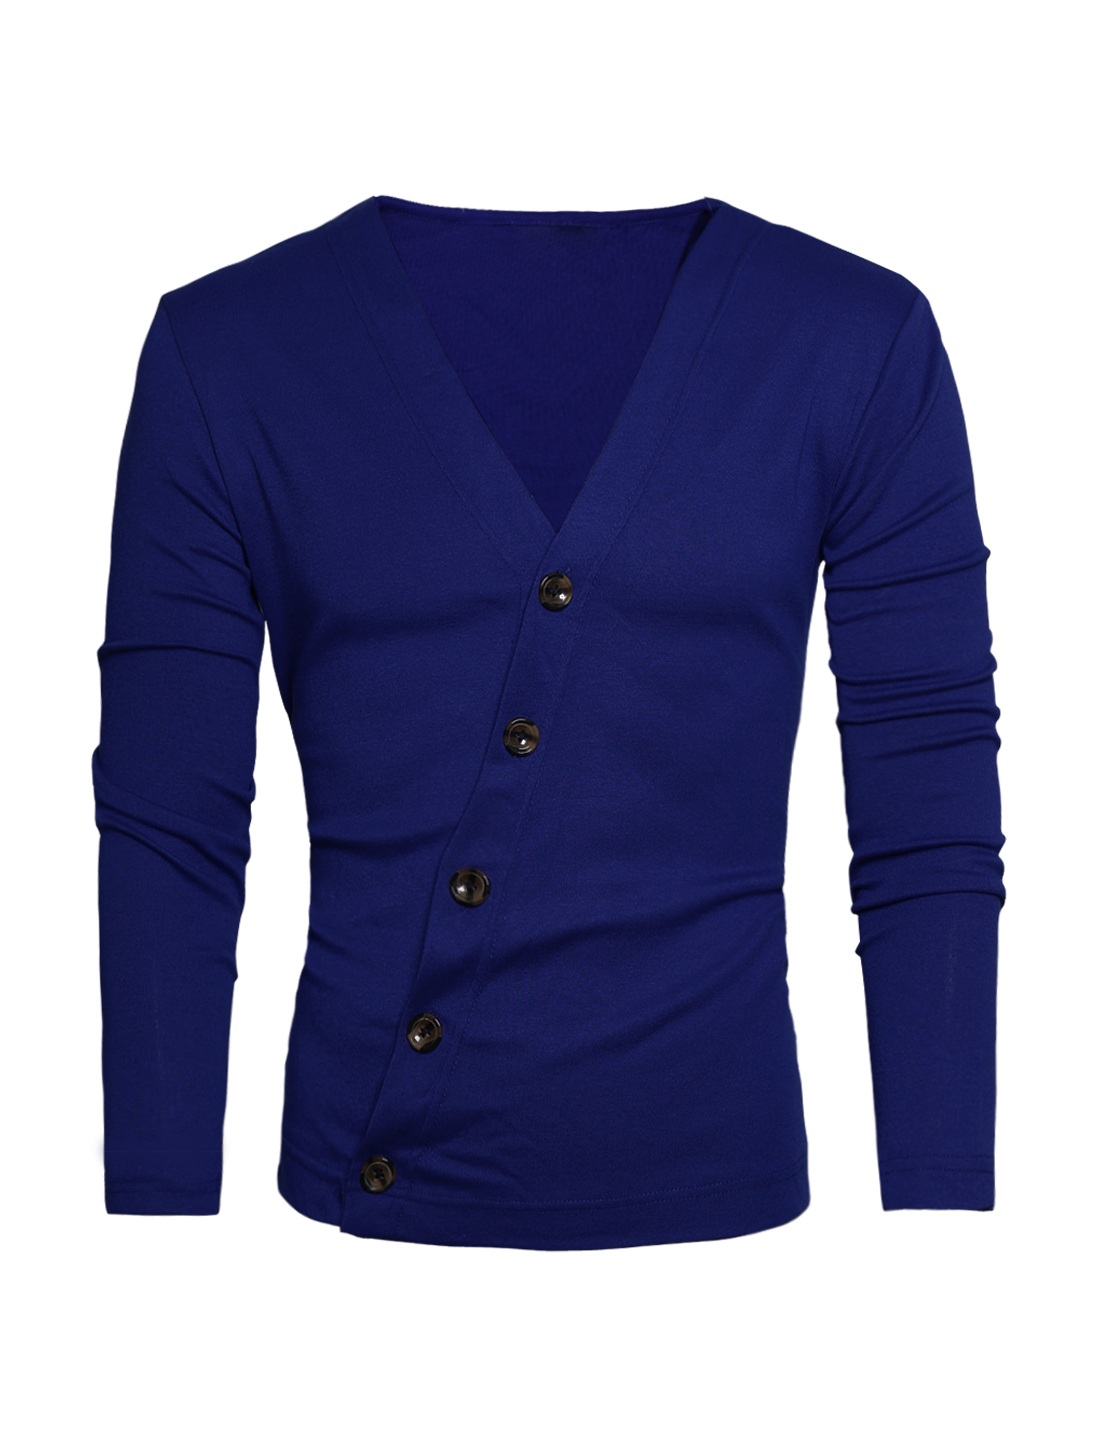 Men Low Cut V Neck Inclined Button Down Long Sleeve Casual Cardigan Royal Blue M